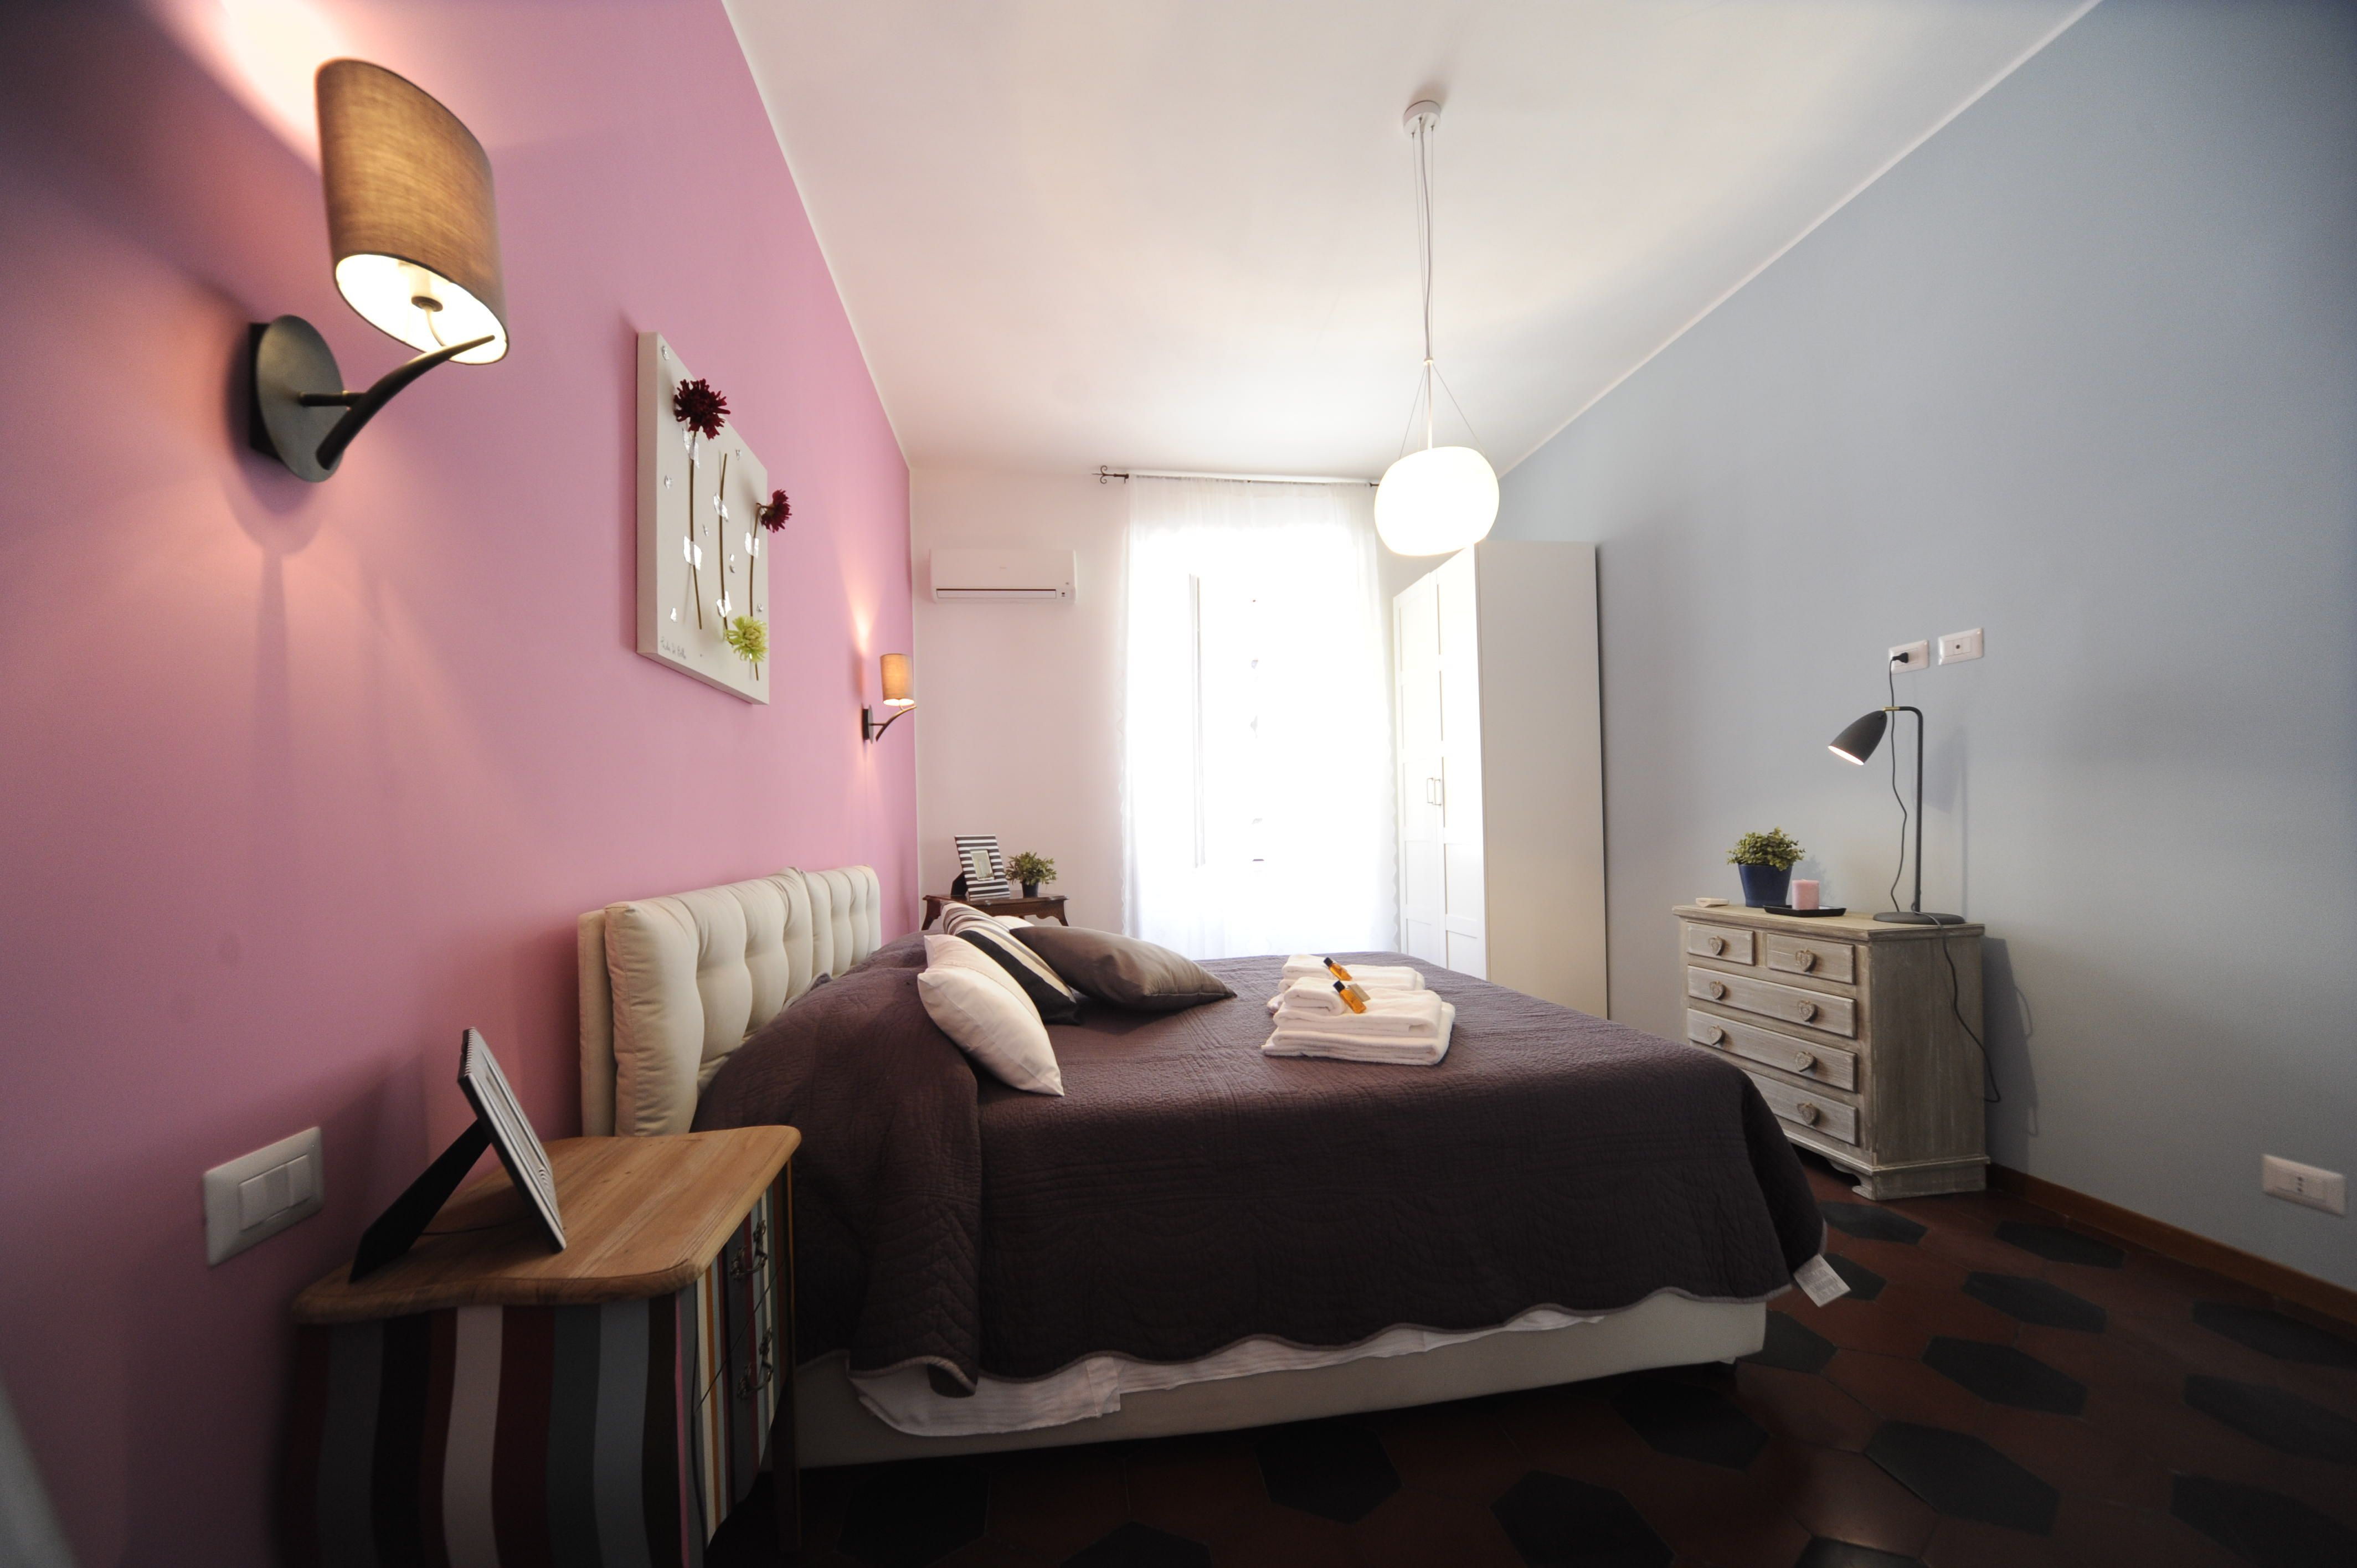 Apartment In Rome With 2 Bedrooms For 3 Sleeps, Colorfuland Quiet: Each  Bedroom Has